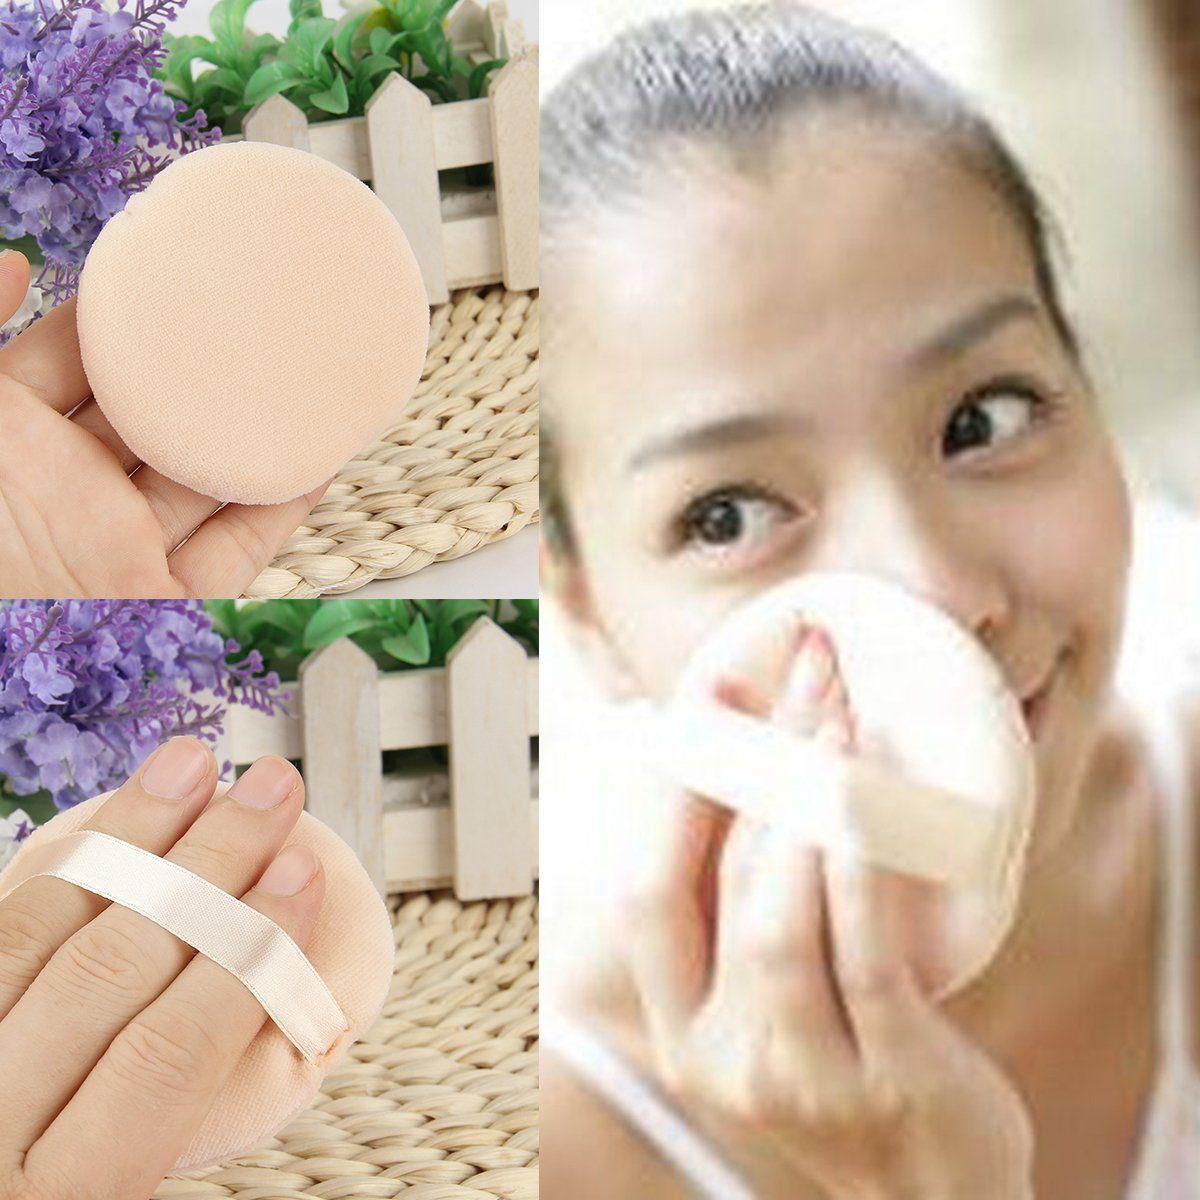 Details about 5x Makeup Facial Beauty Sponge Powder Puff